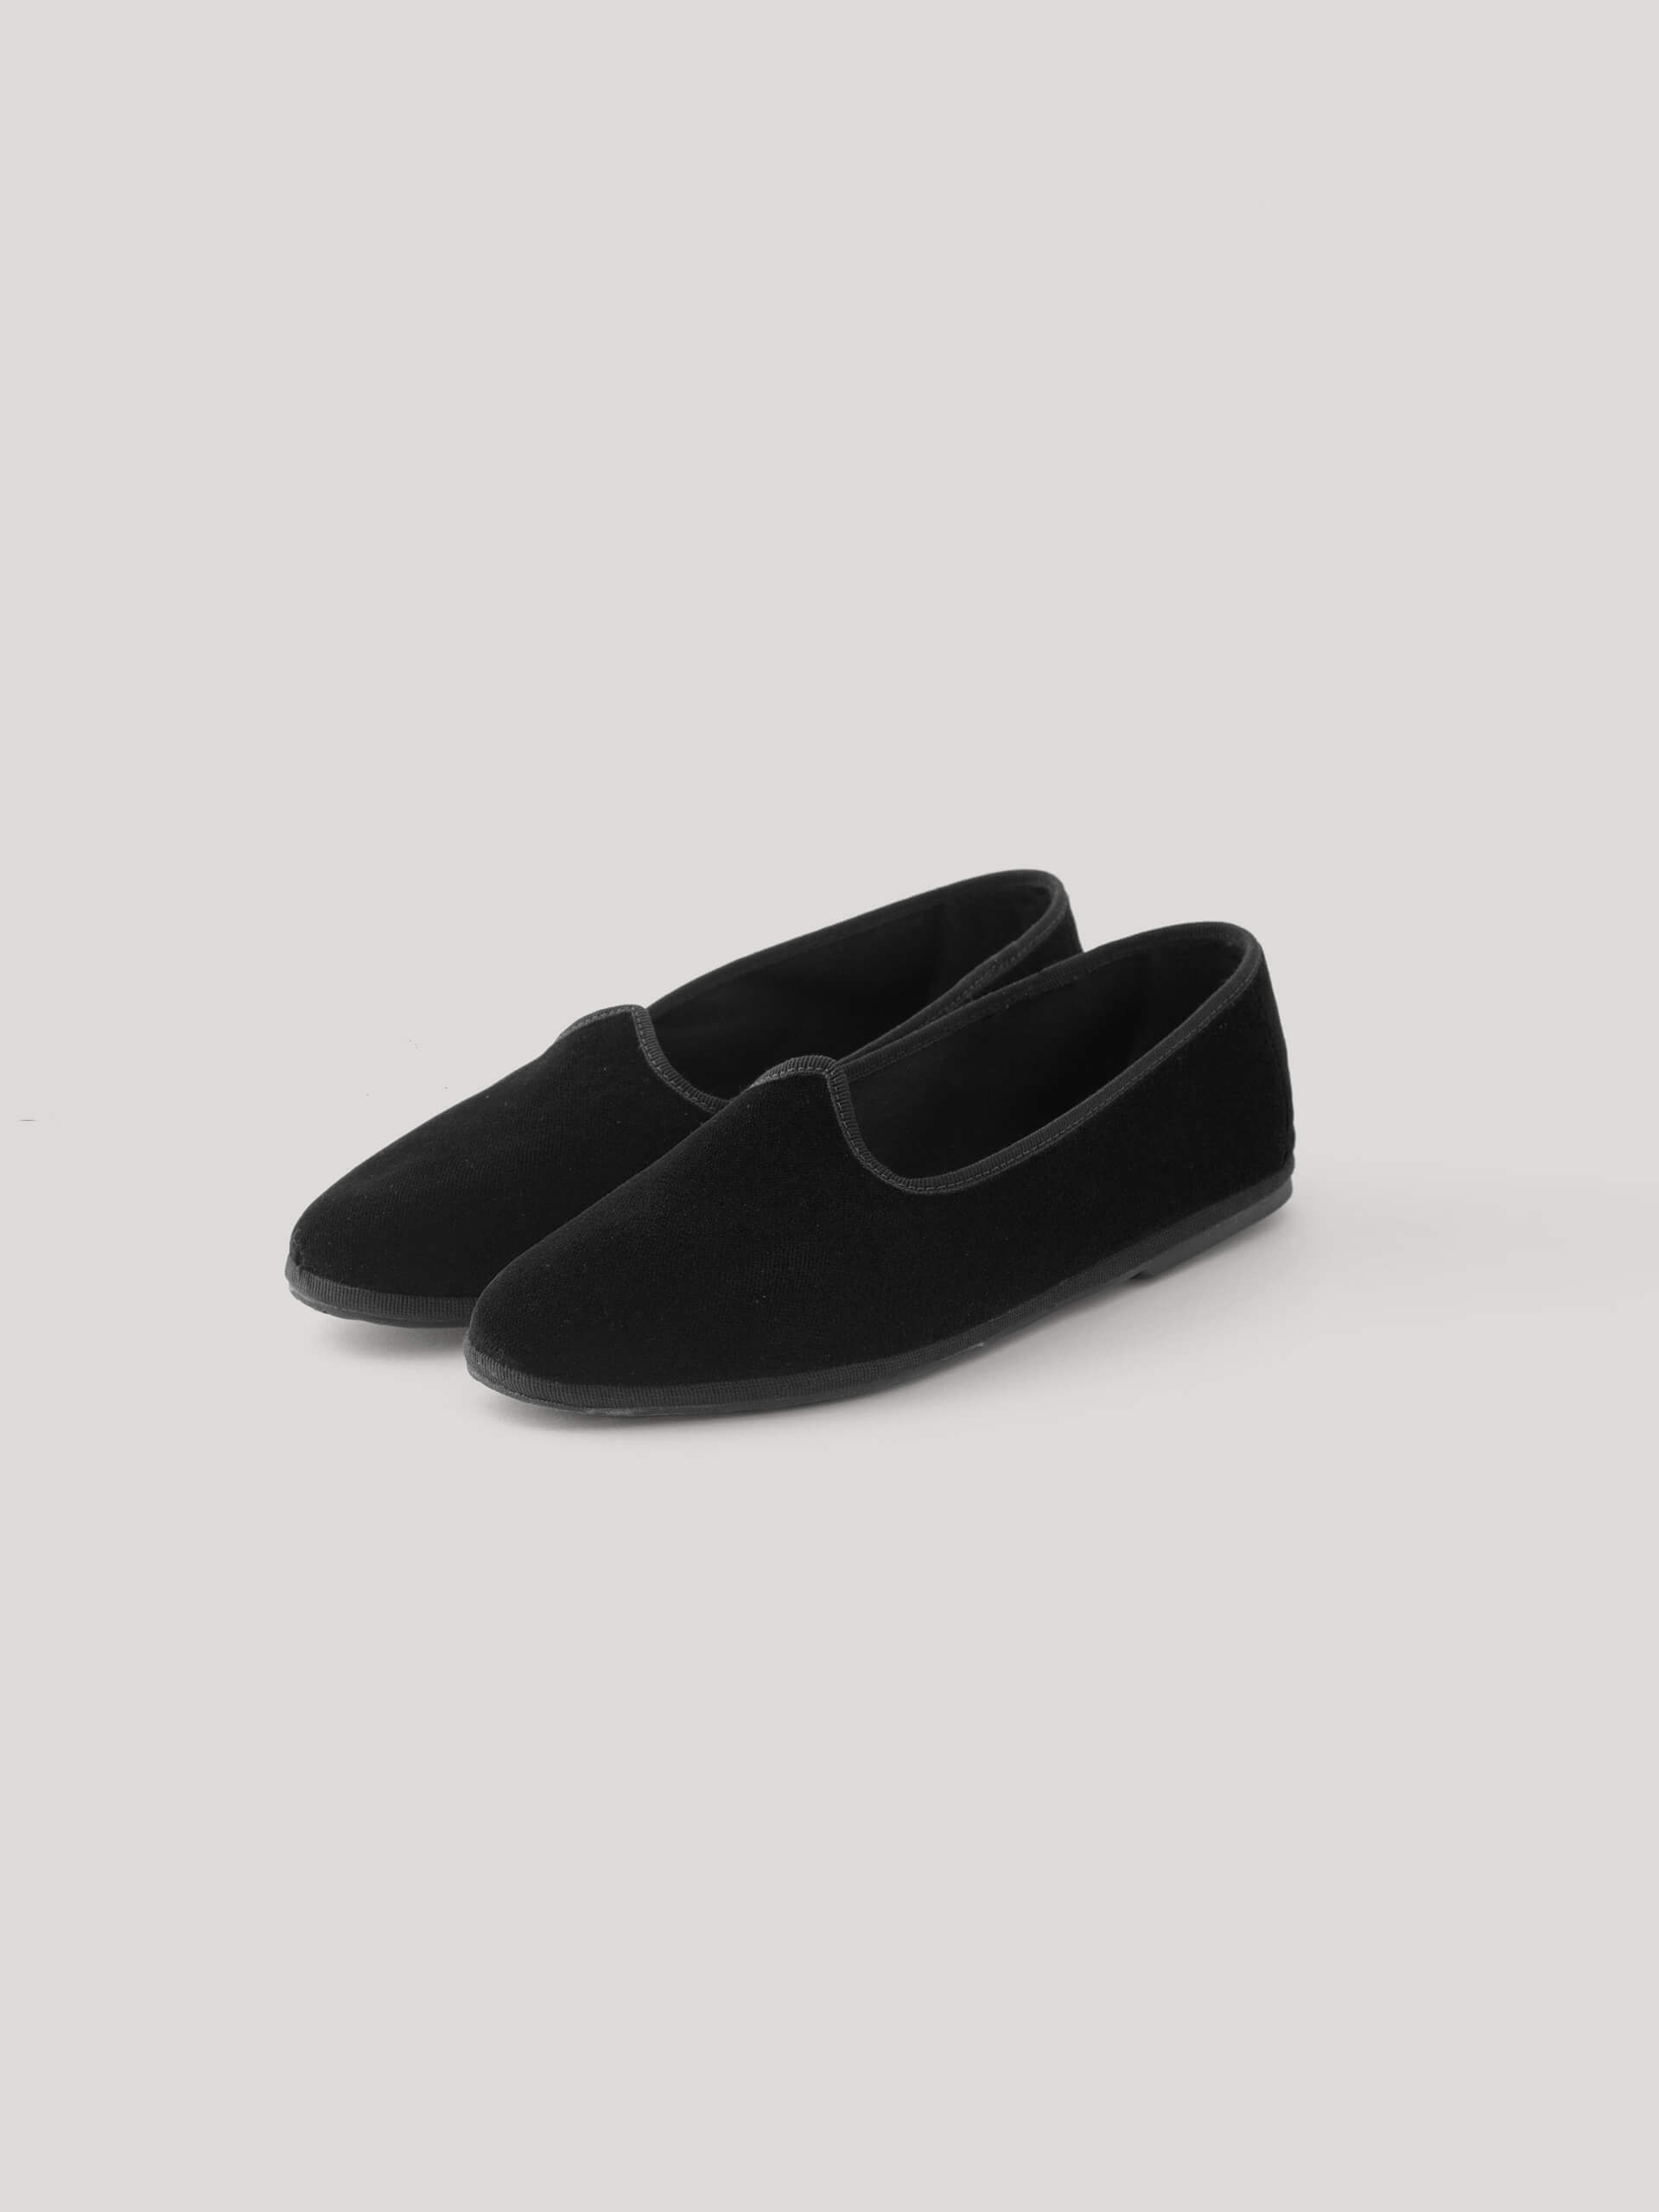 Friulane slippers, black